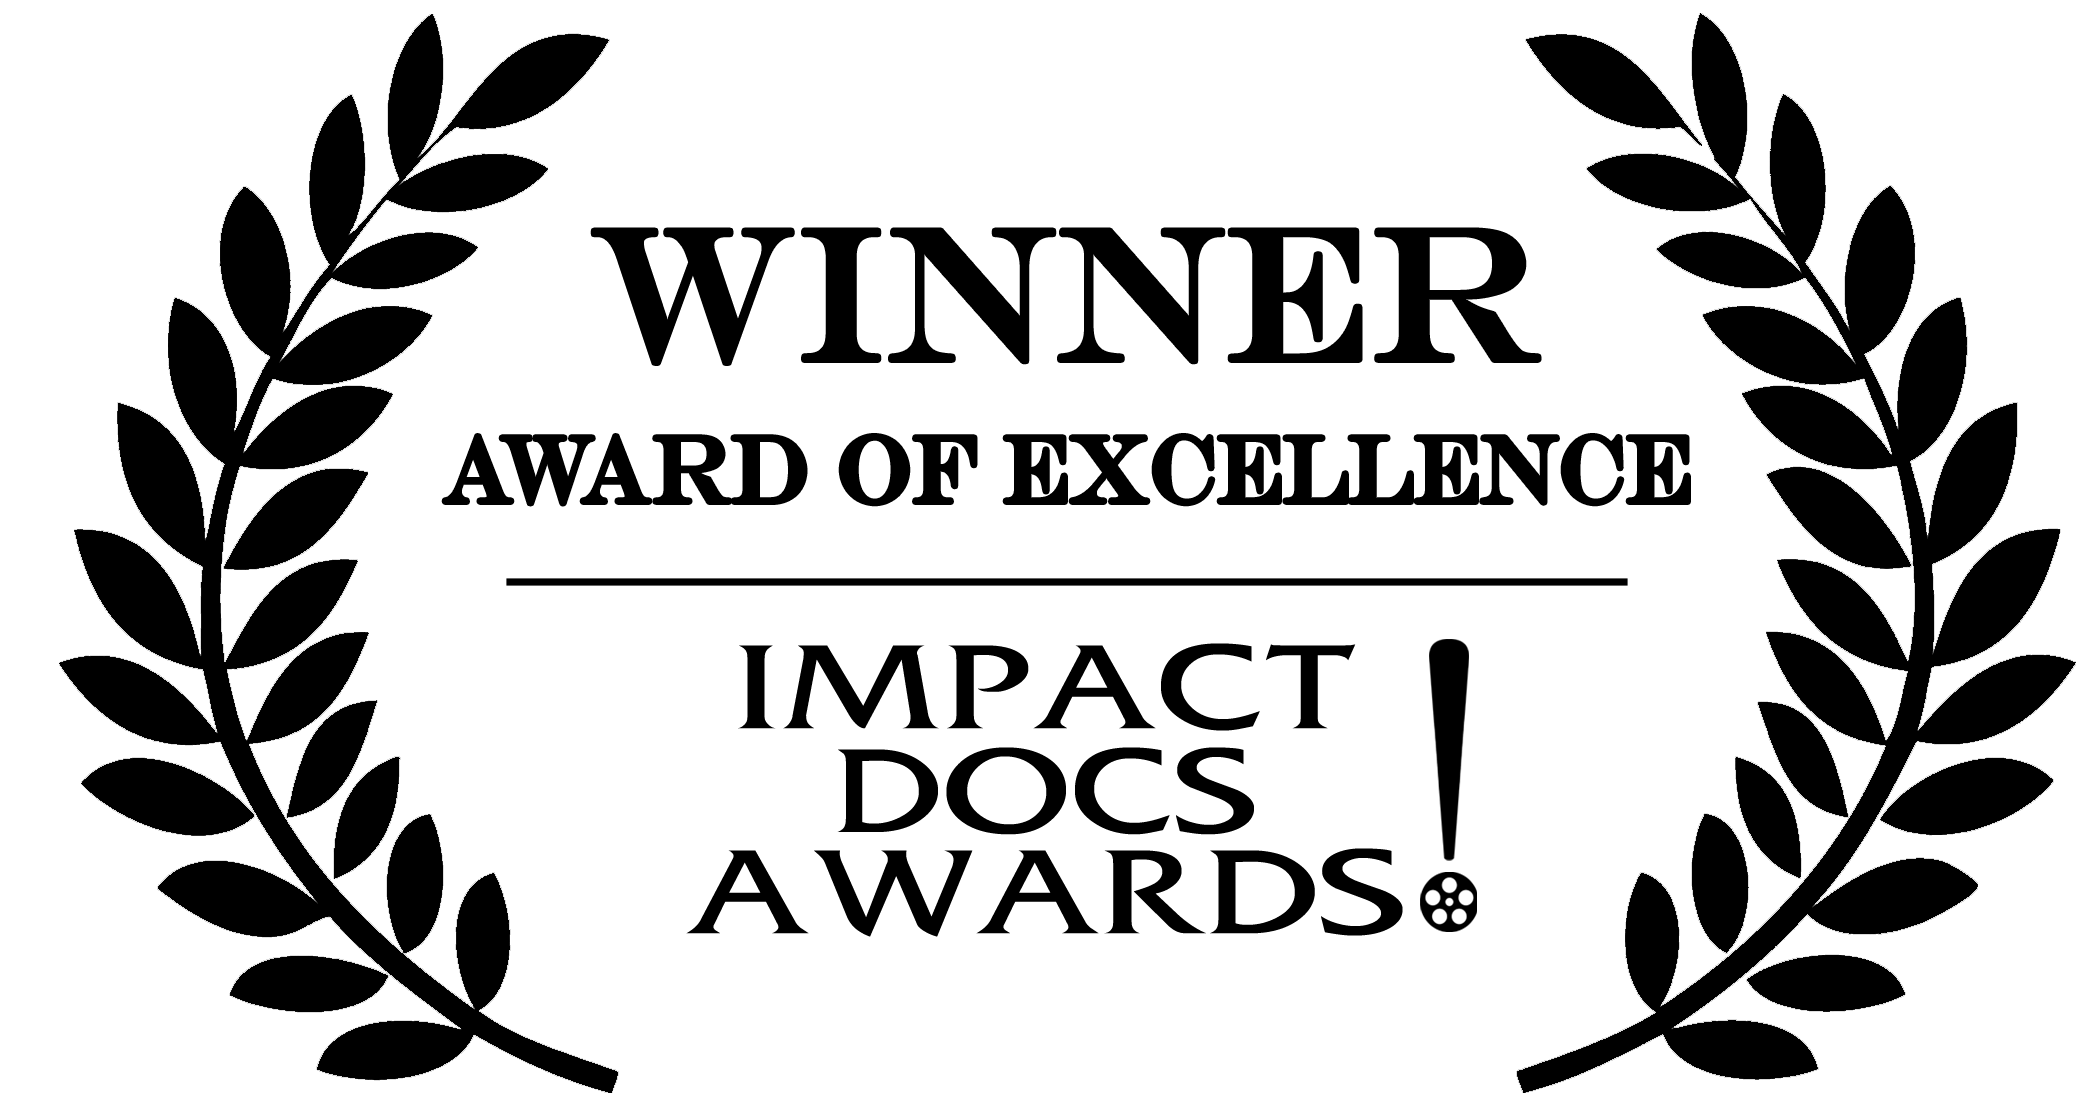 Excellence-WORDS-BLACK.png